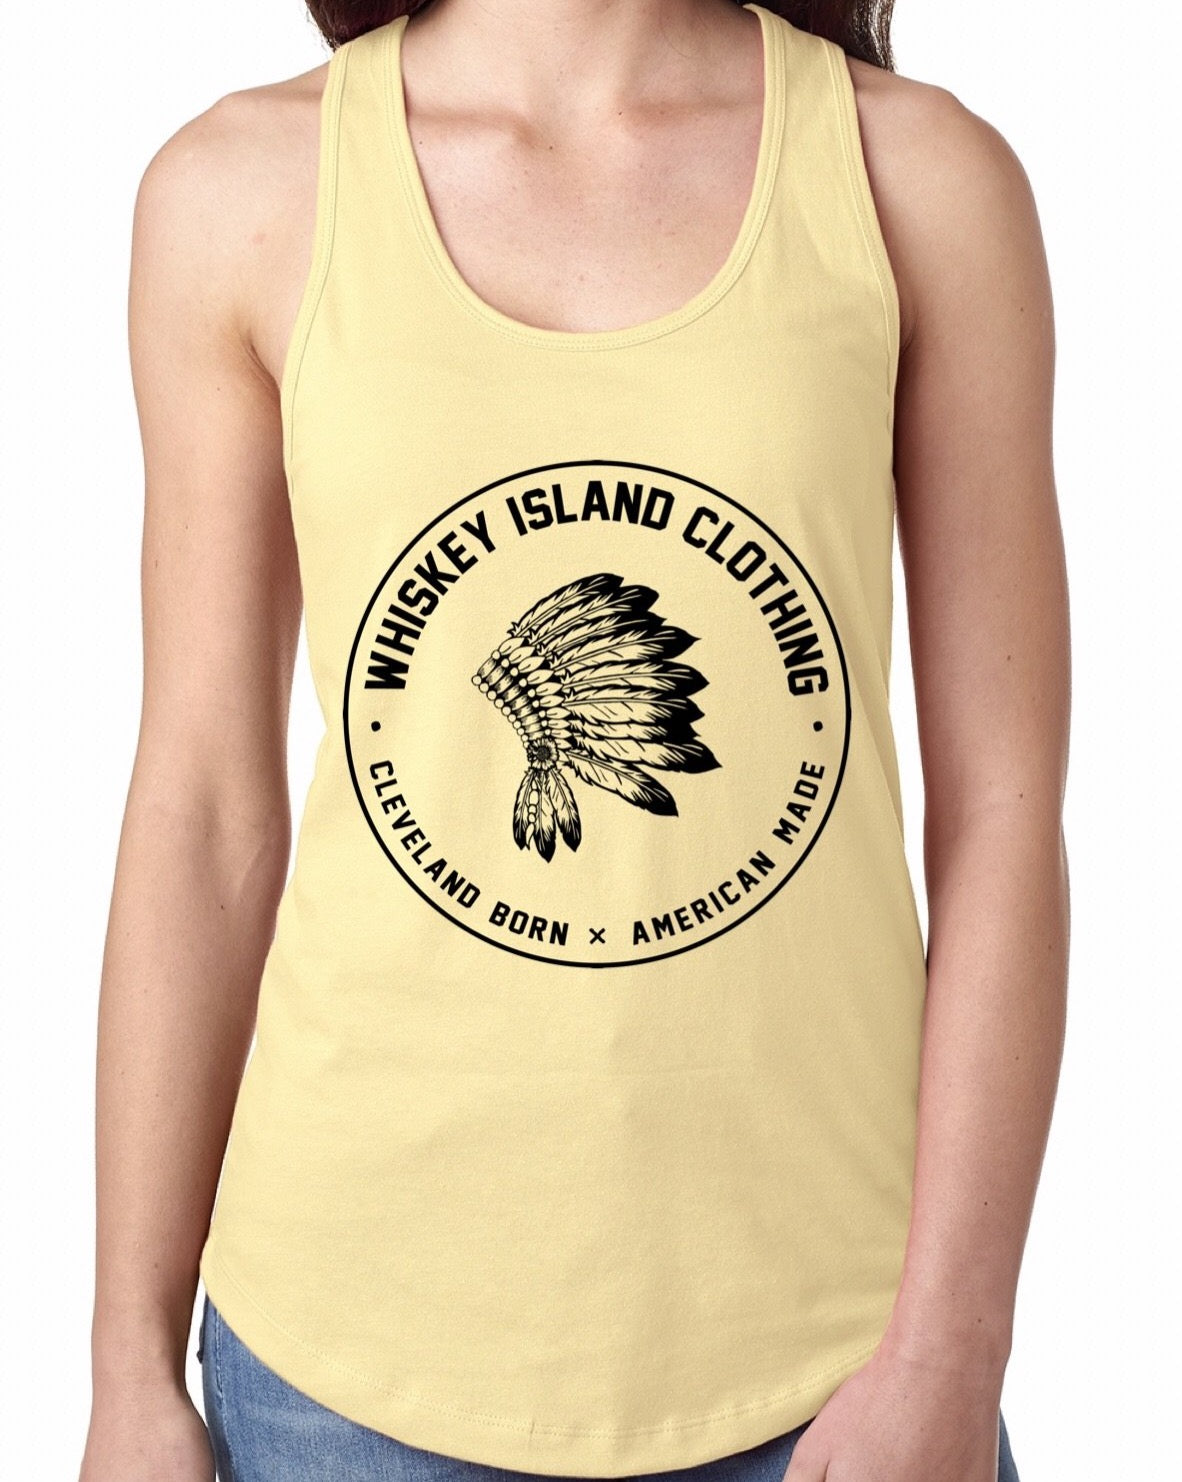 Whiskey Island Classic Racerback - Banana Yellow - Whiskey Island Clothing